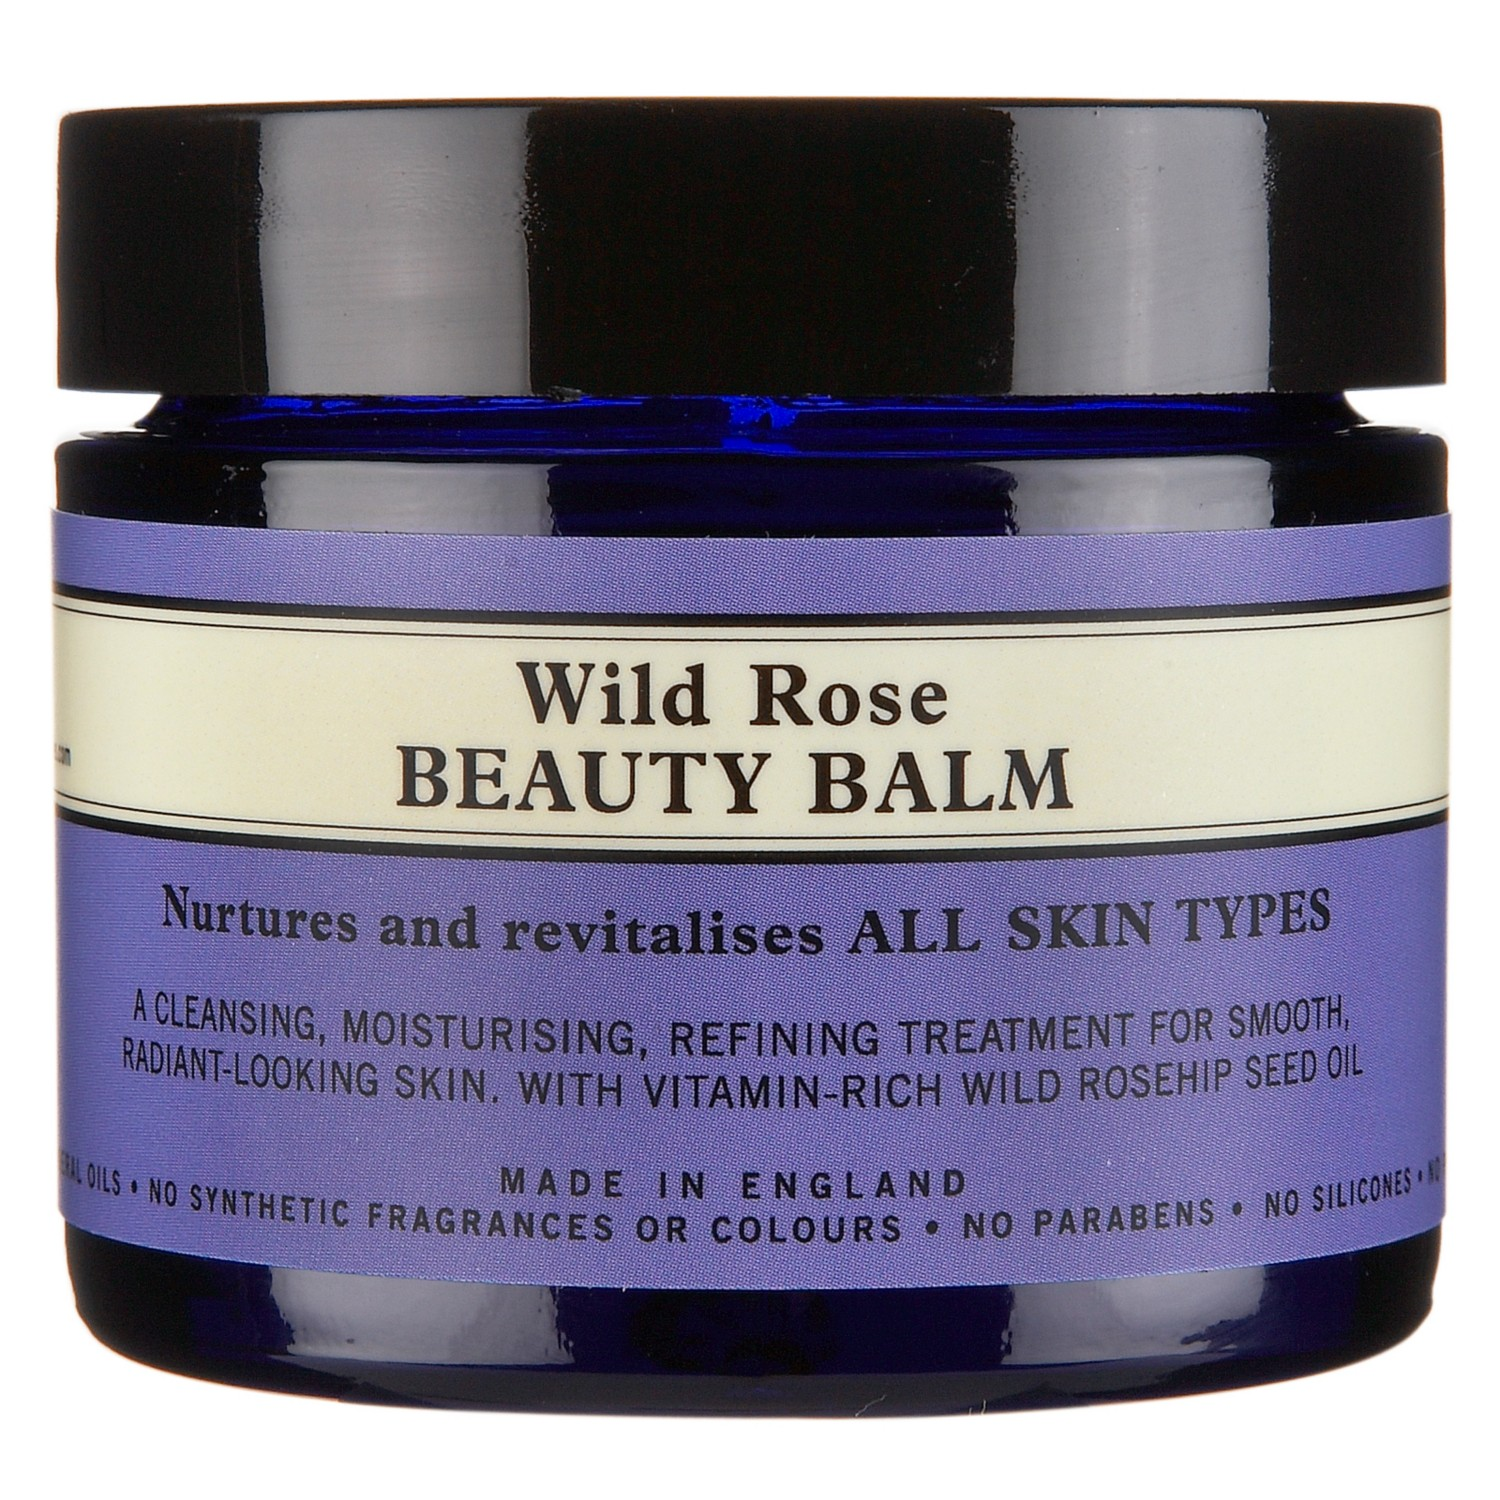 16 Ways To Benefit From Using Neal's Yard Wild Rose Beauty. College Planning Advisors Austin Wood Floors. Jambox Bluetooth Pairing Weird Police Reports. Deals On Tv And Internet Car Door Lock Repair. Car Customization Websites Top Seo Companies. Merchant Credit Card Processing Reviews. Website Monitoring Software Reviews. Auto Insurance In Killeen Tx. Emergency Transportation Services